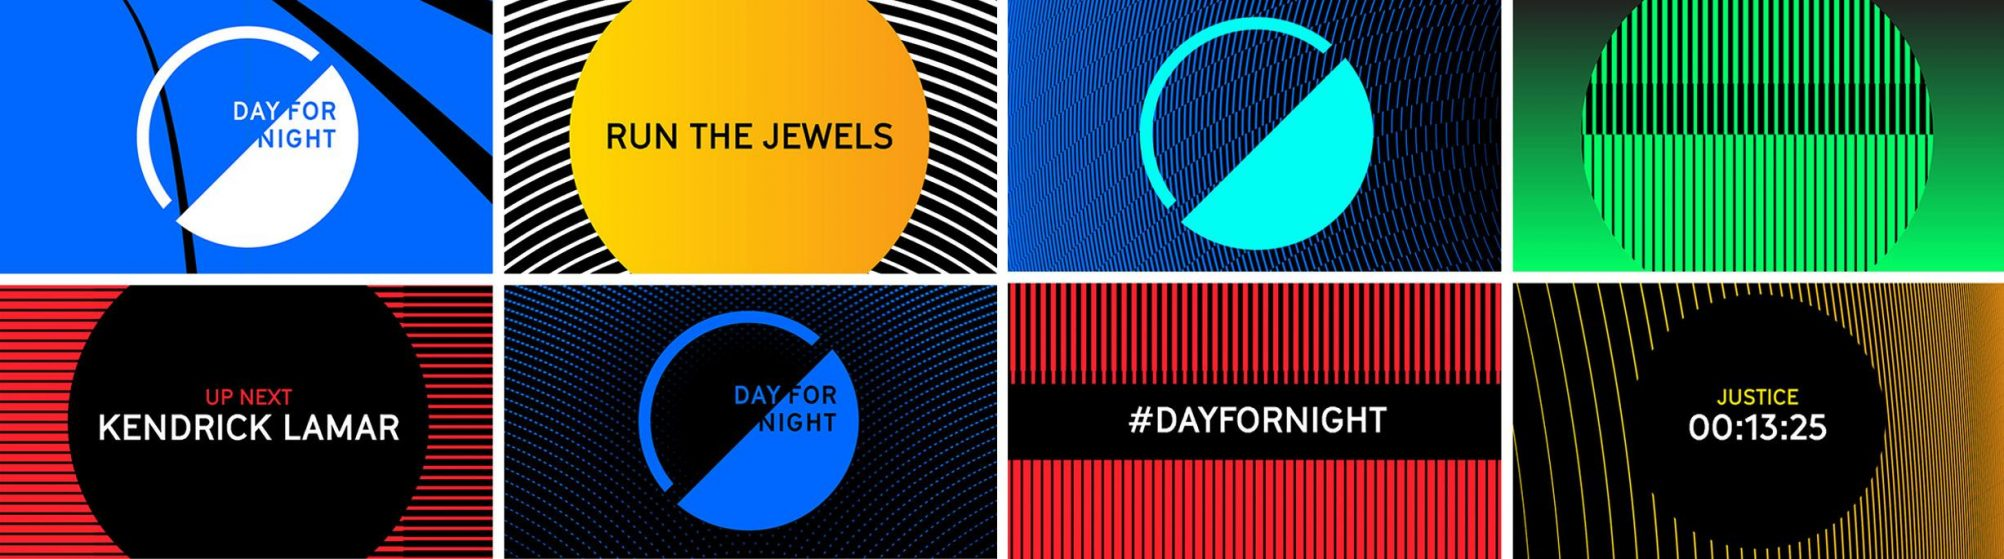 Day for Night Festival branding screens